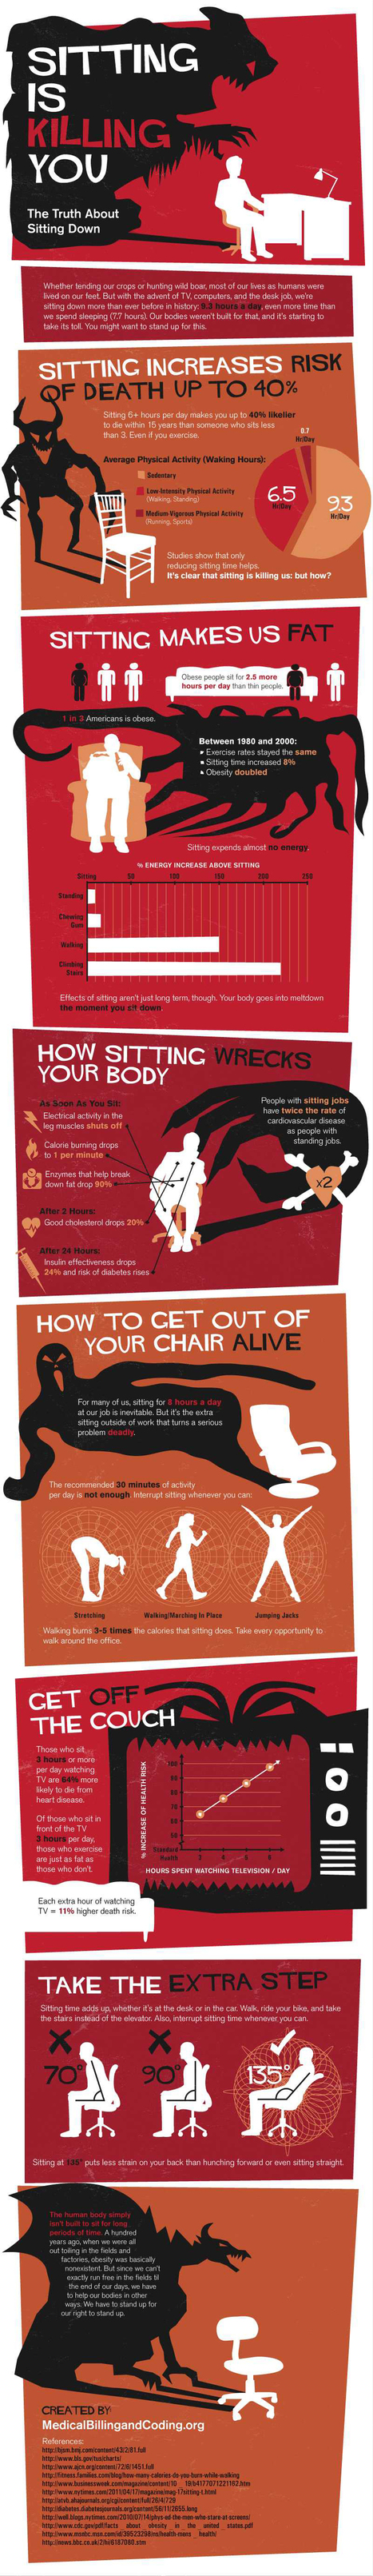 Sitting Is Killing You!  #Infographic Promoting Exercise | HealthSmart | Scoop.it